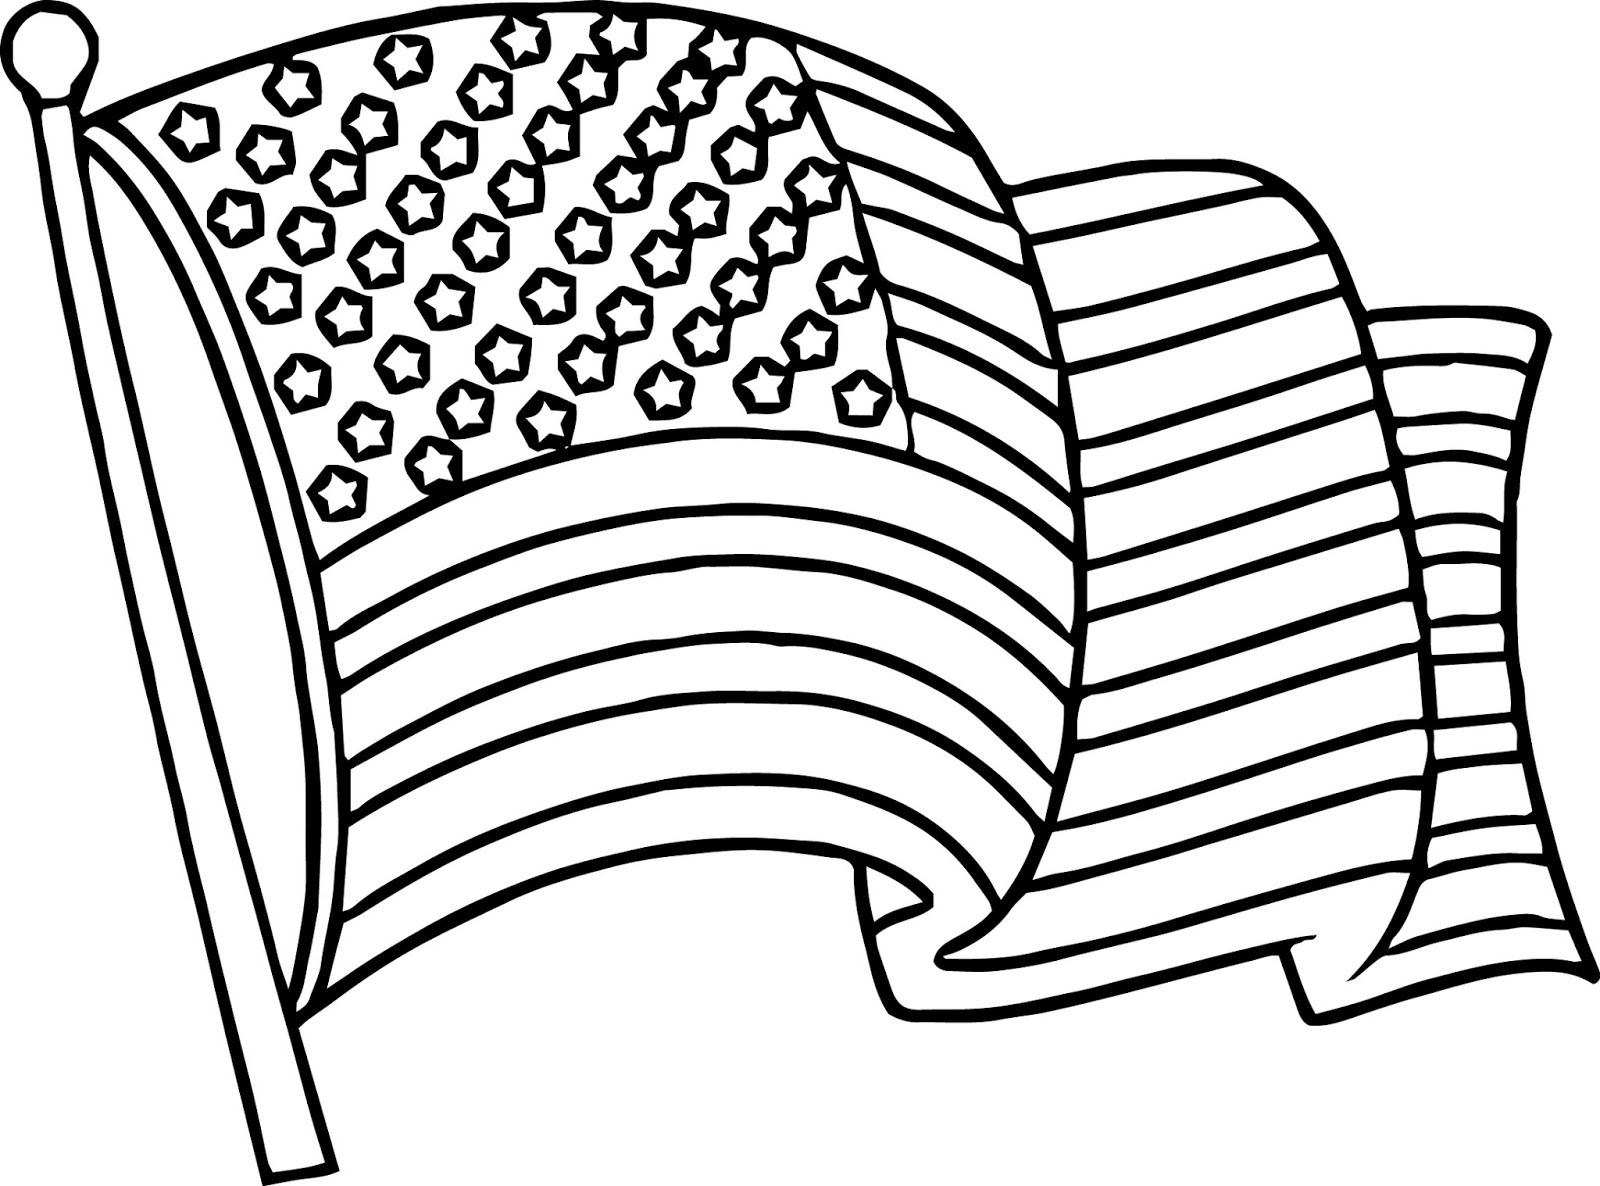 the american flag coloring page american flag coloring pages best coloring pages for kids the american flag page coloring